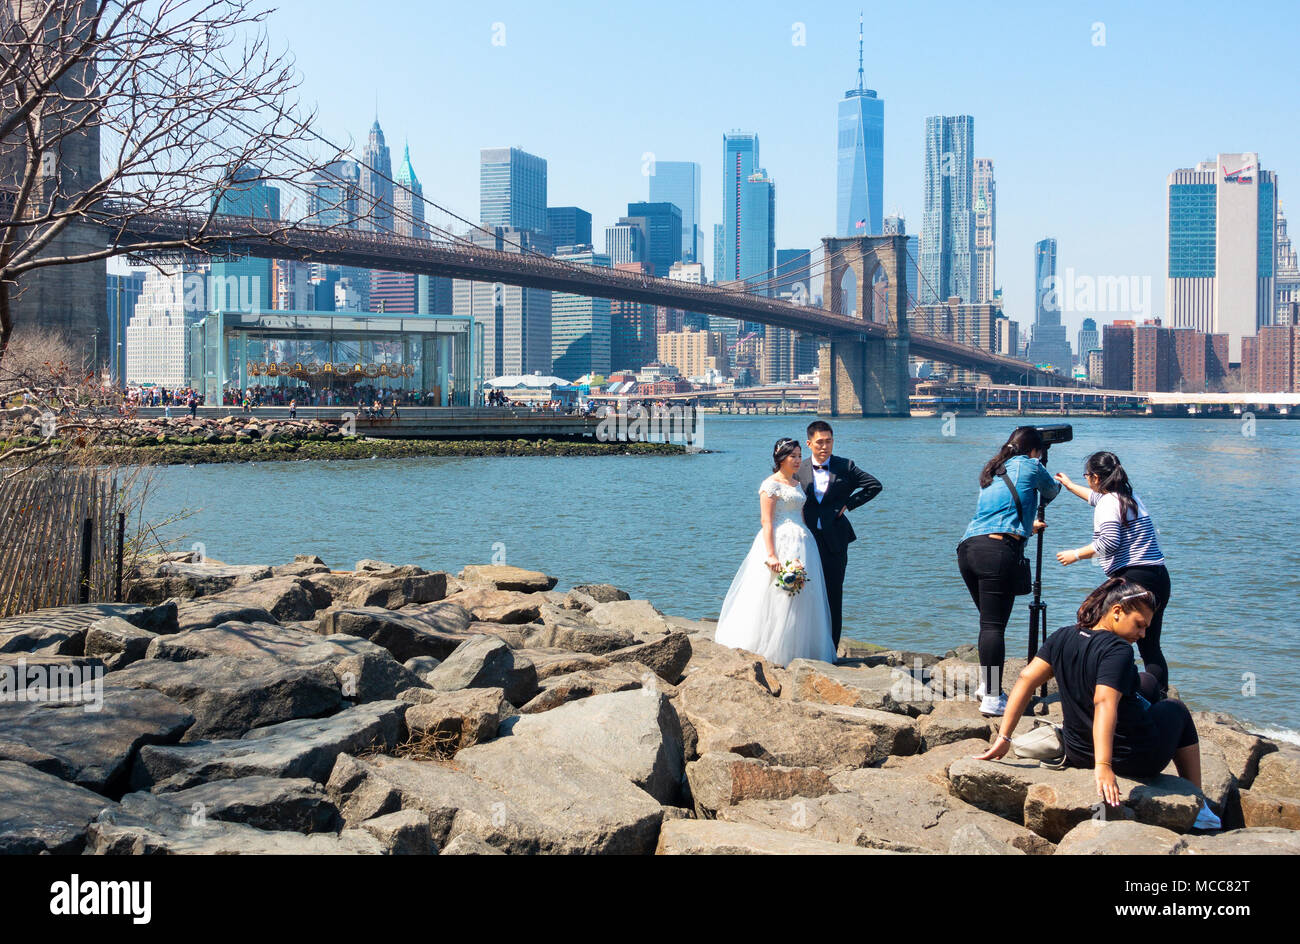 An Asian couple having wedding video done in DUMBO Brooklyn, with the Brooklyn Bridge, Jane's Carousel and Manhattan skyline in the background - Stock Image